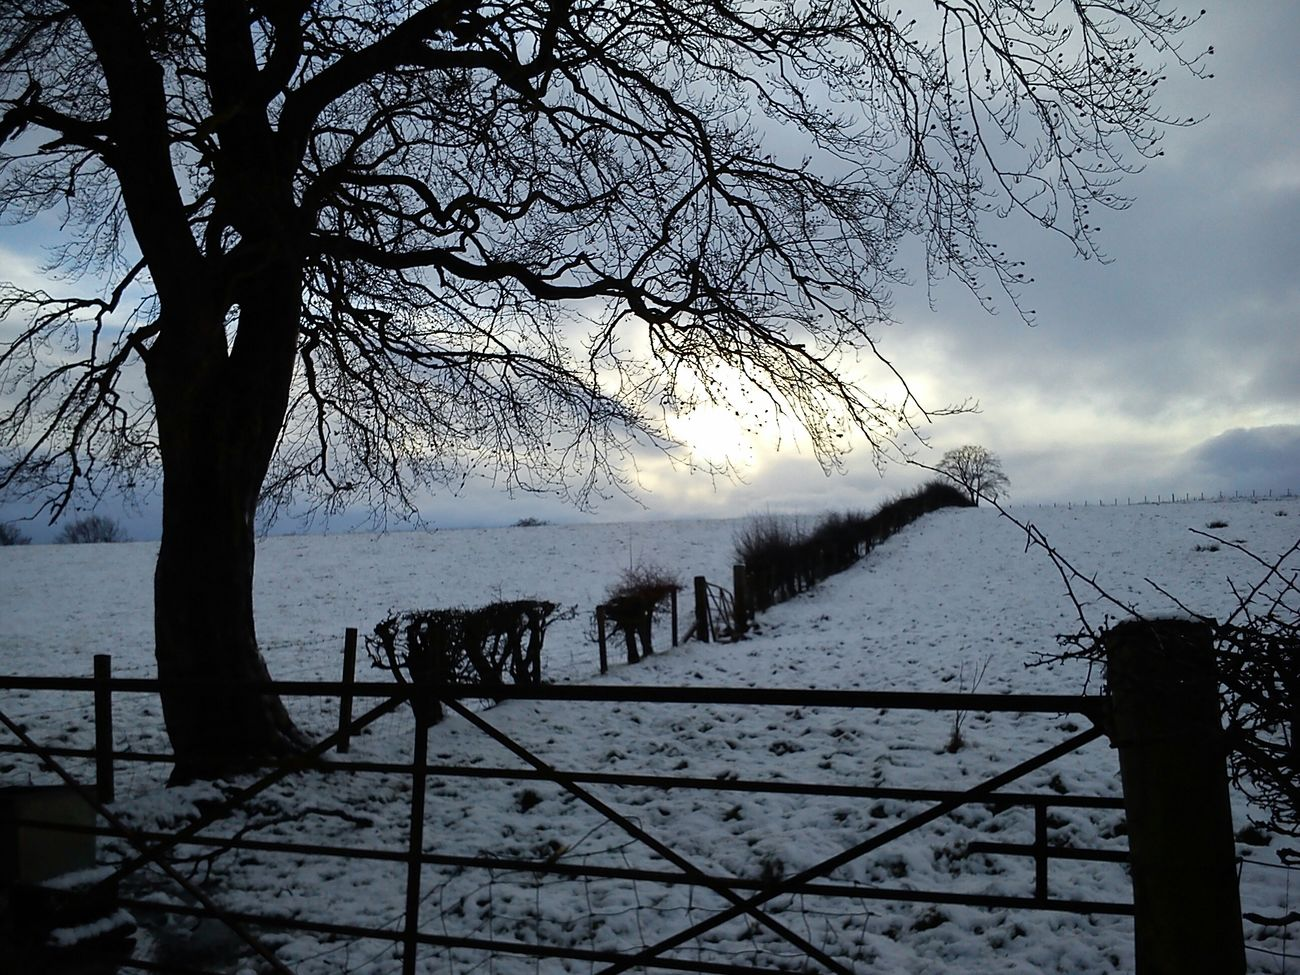 An old winter scene I once saw. Photographs By LauraL LauraLightbodysnaps